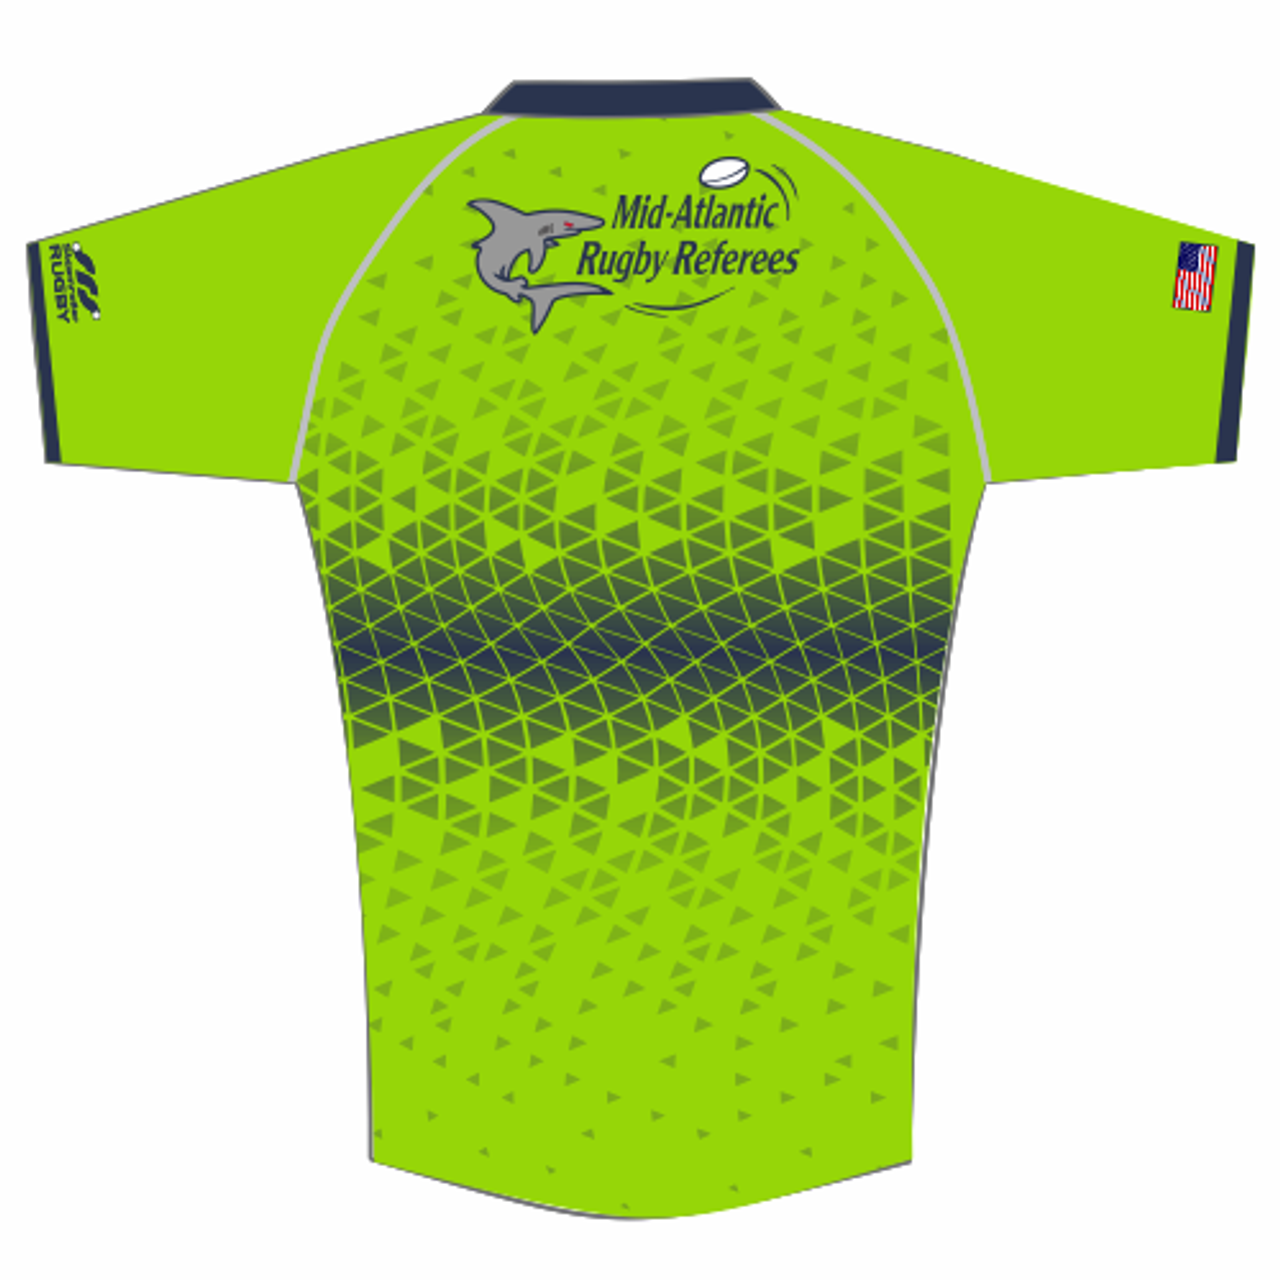 Mid-Atlantic Rugby Referees MATCH FIT Jersey, Bright Green